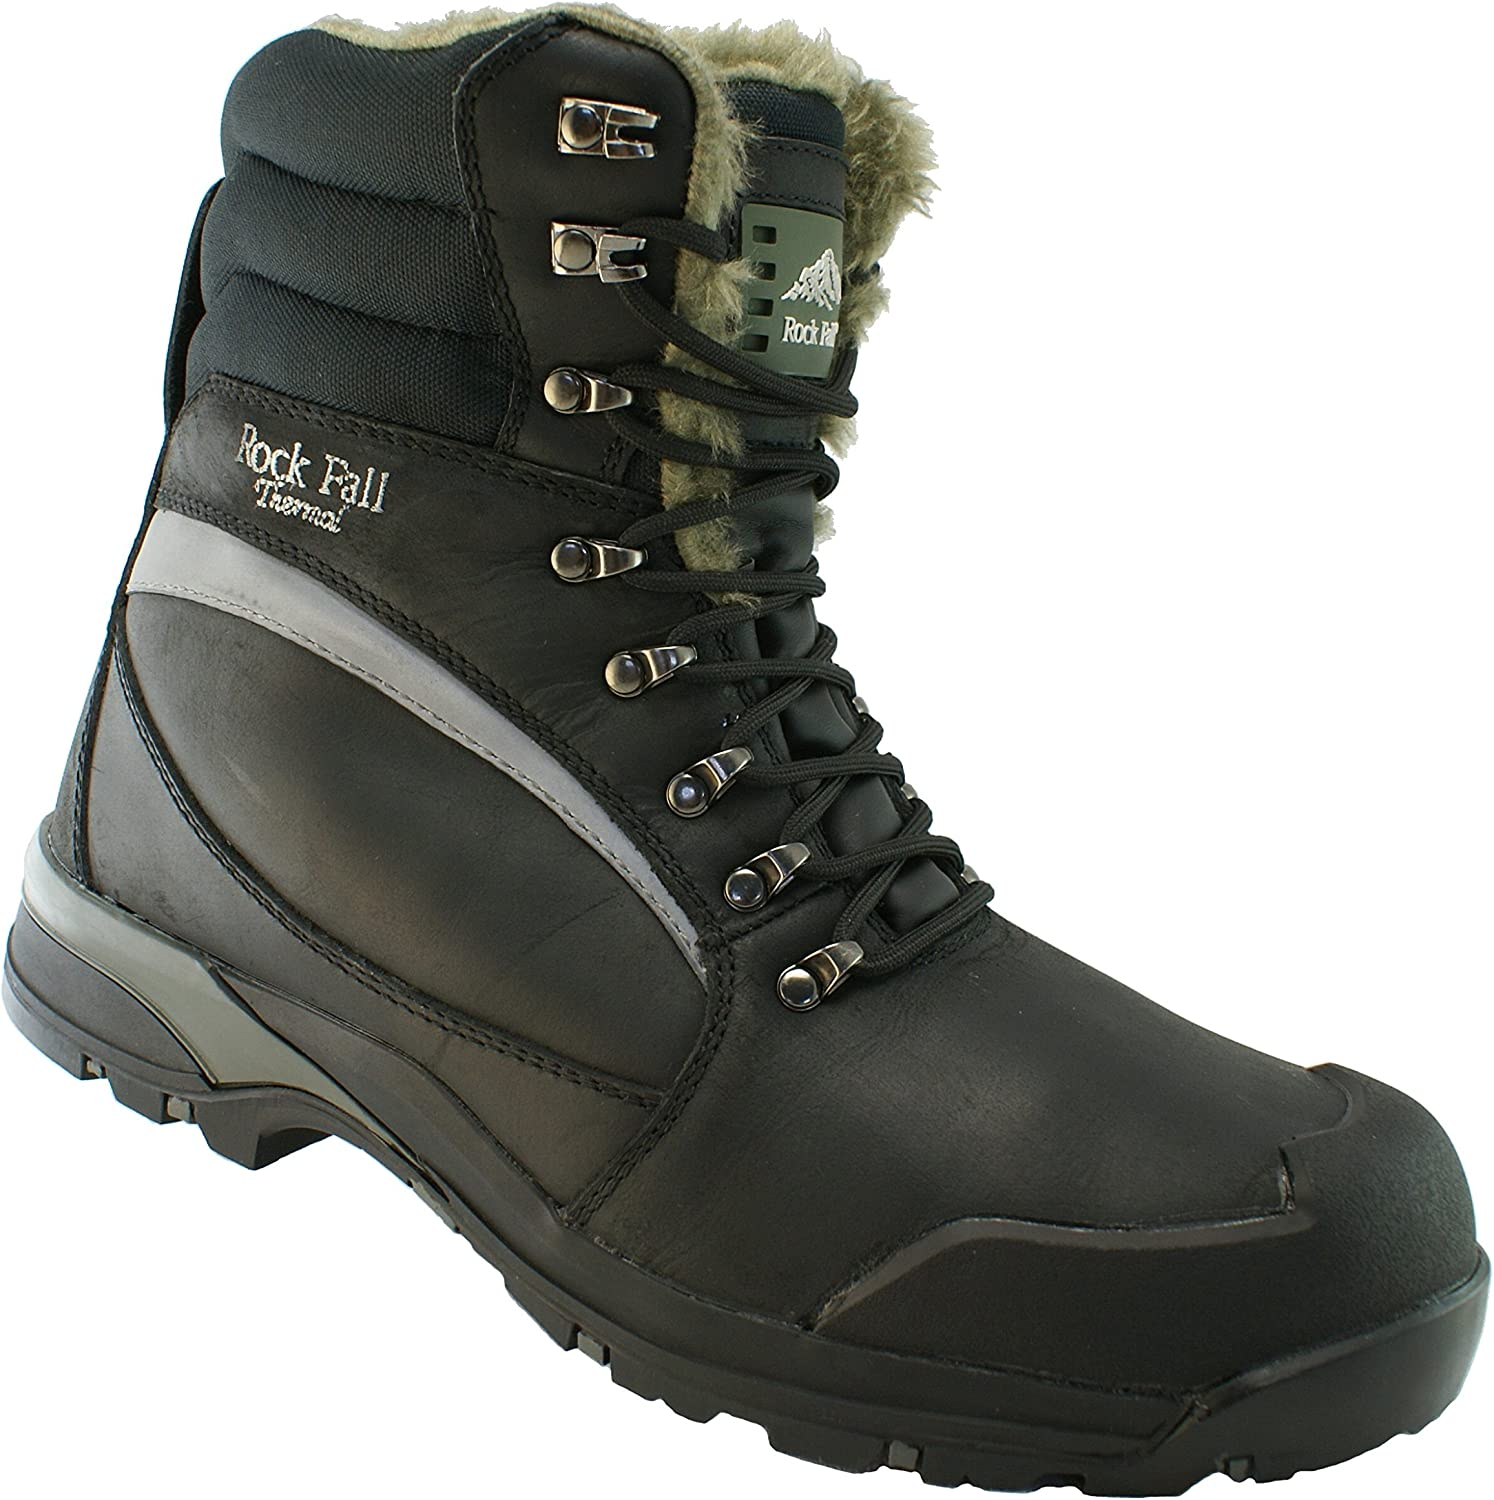 Rock Fall Alaska RF001 Black Thermal Lined Winter Safety Boots